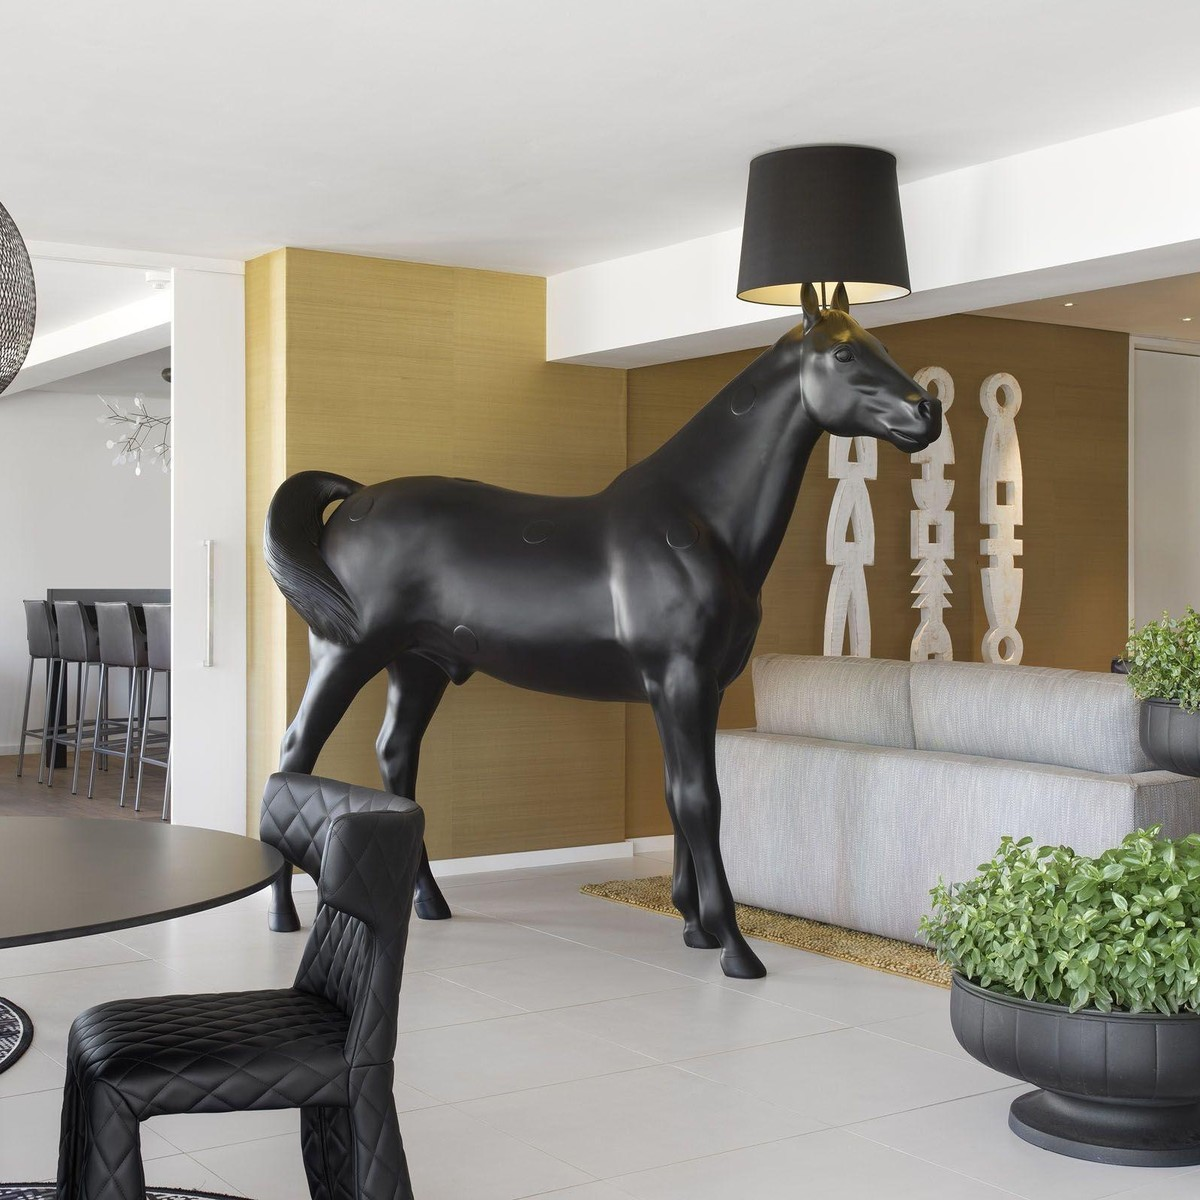 Moooi Horse Lamp Floor Lamp | Moooi | AmbienteDirect.com for Moooi Lamp Horse  67qdu